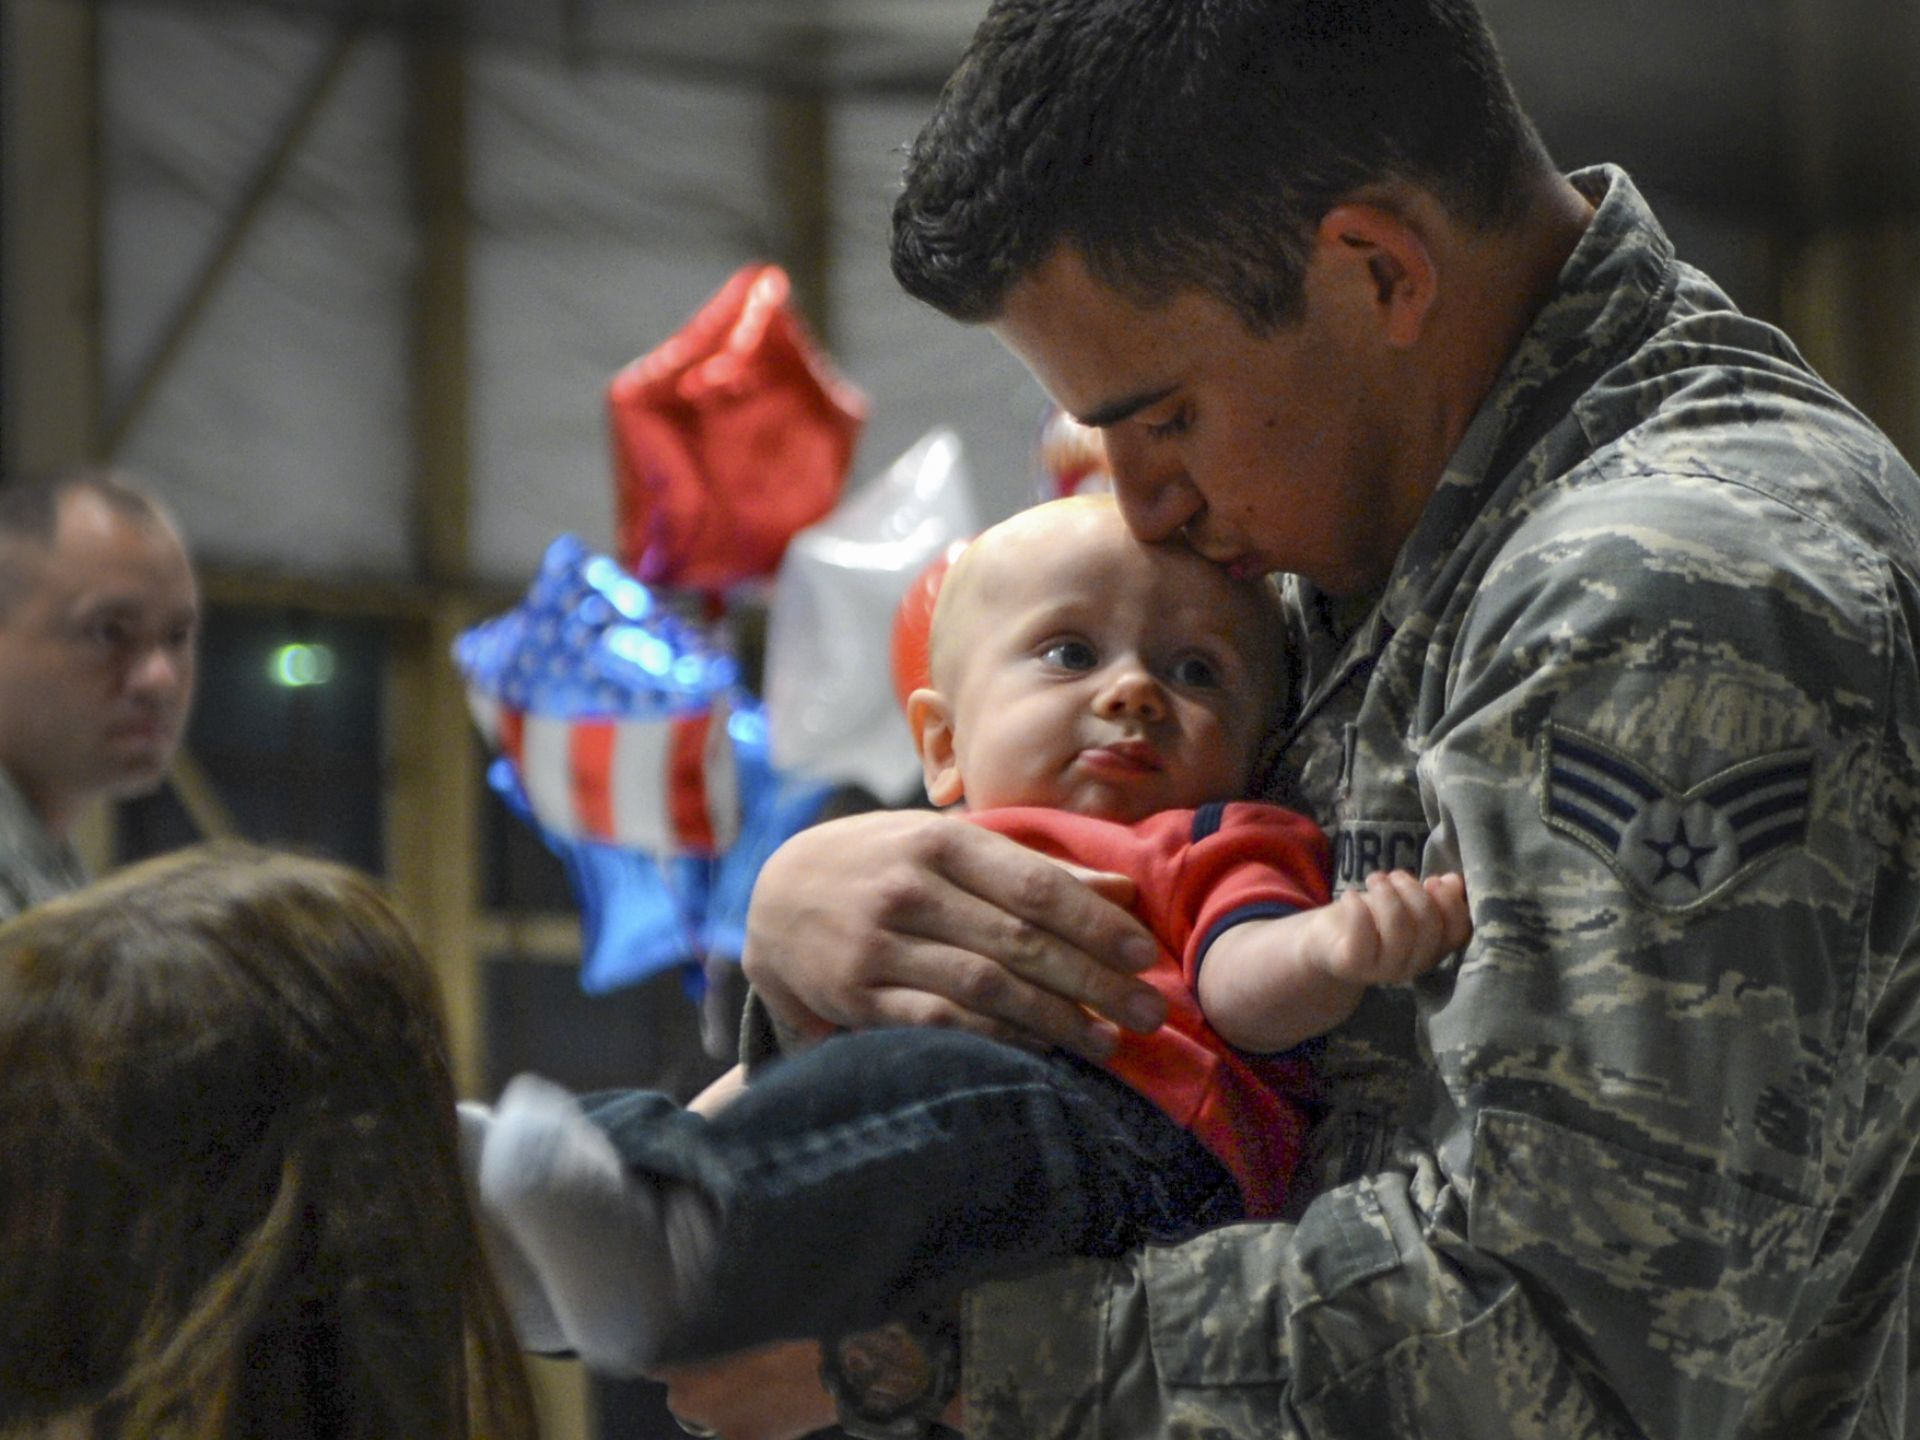 Airmen assigned to the 20th Fighter Wing return from a deployment at Shaw Air Force Base, S.C. Approximately 200 airmen deployed to the U.S. Central Command area of responsibility for six months. | Military Times >>